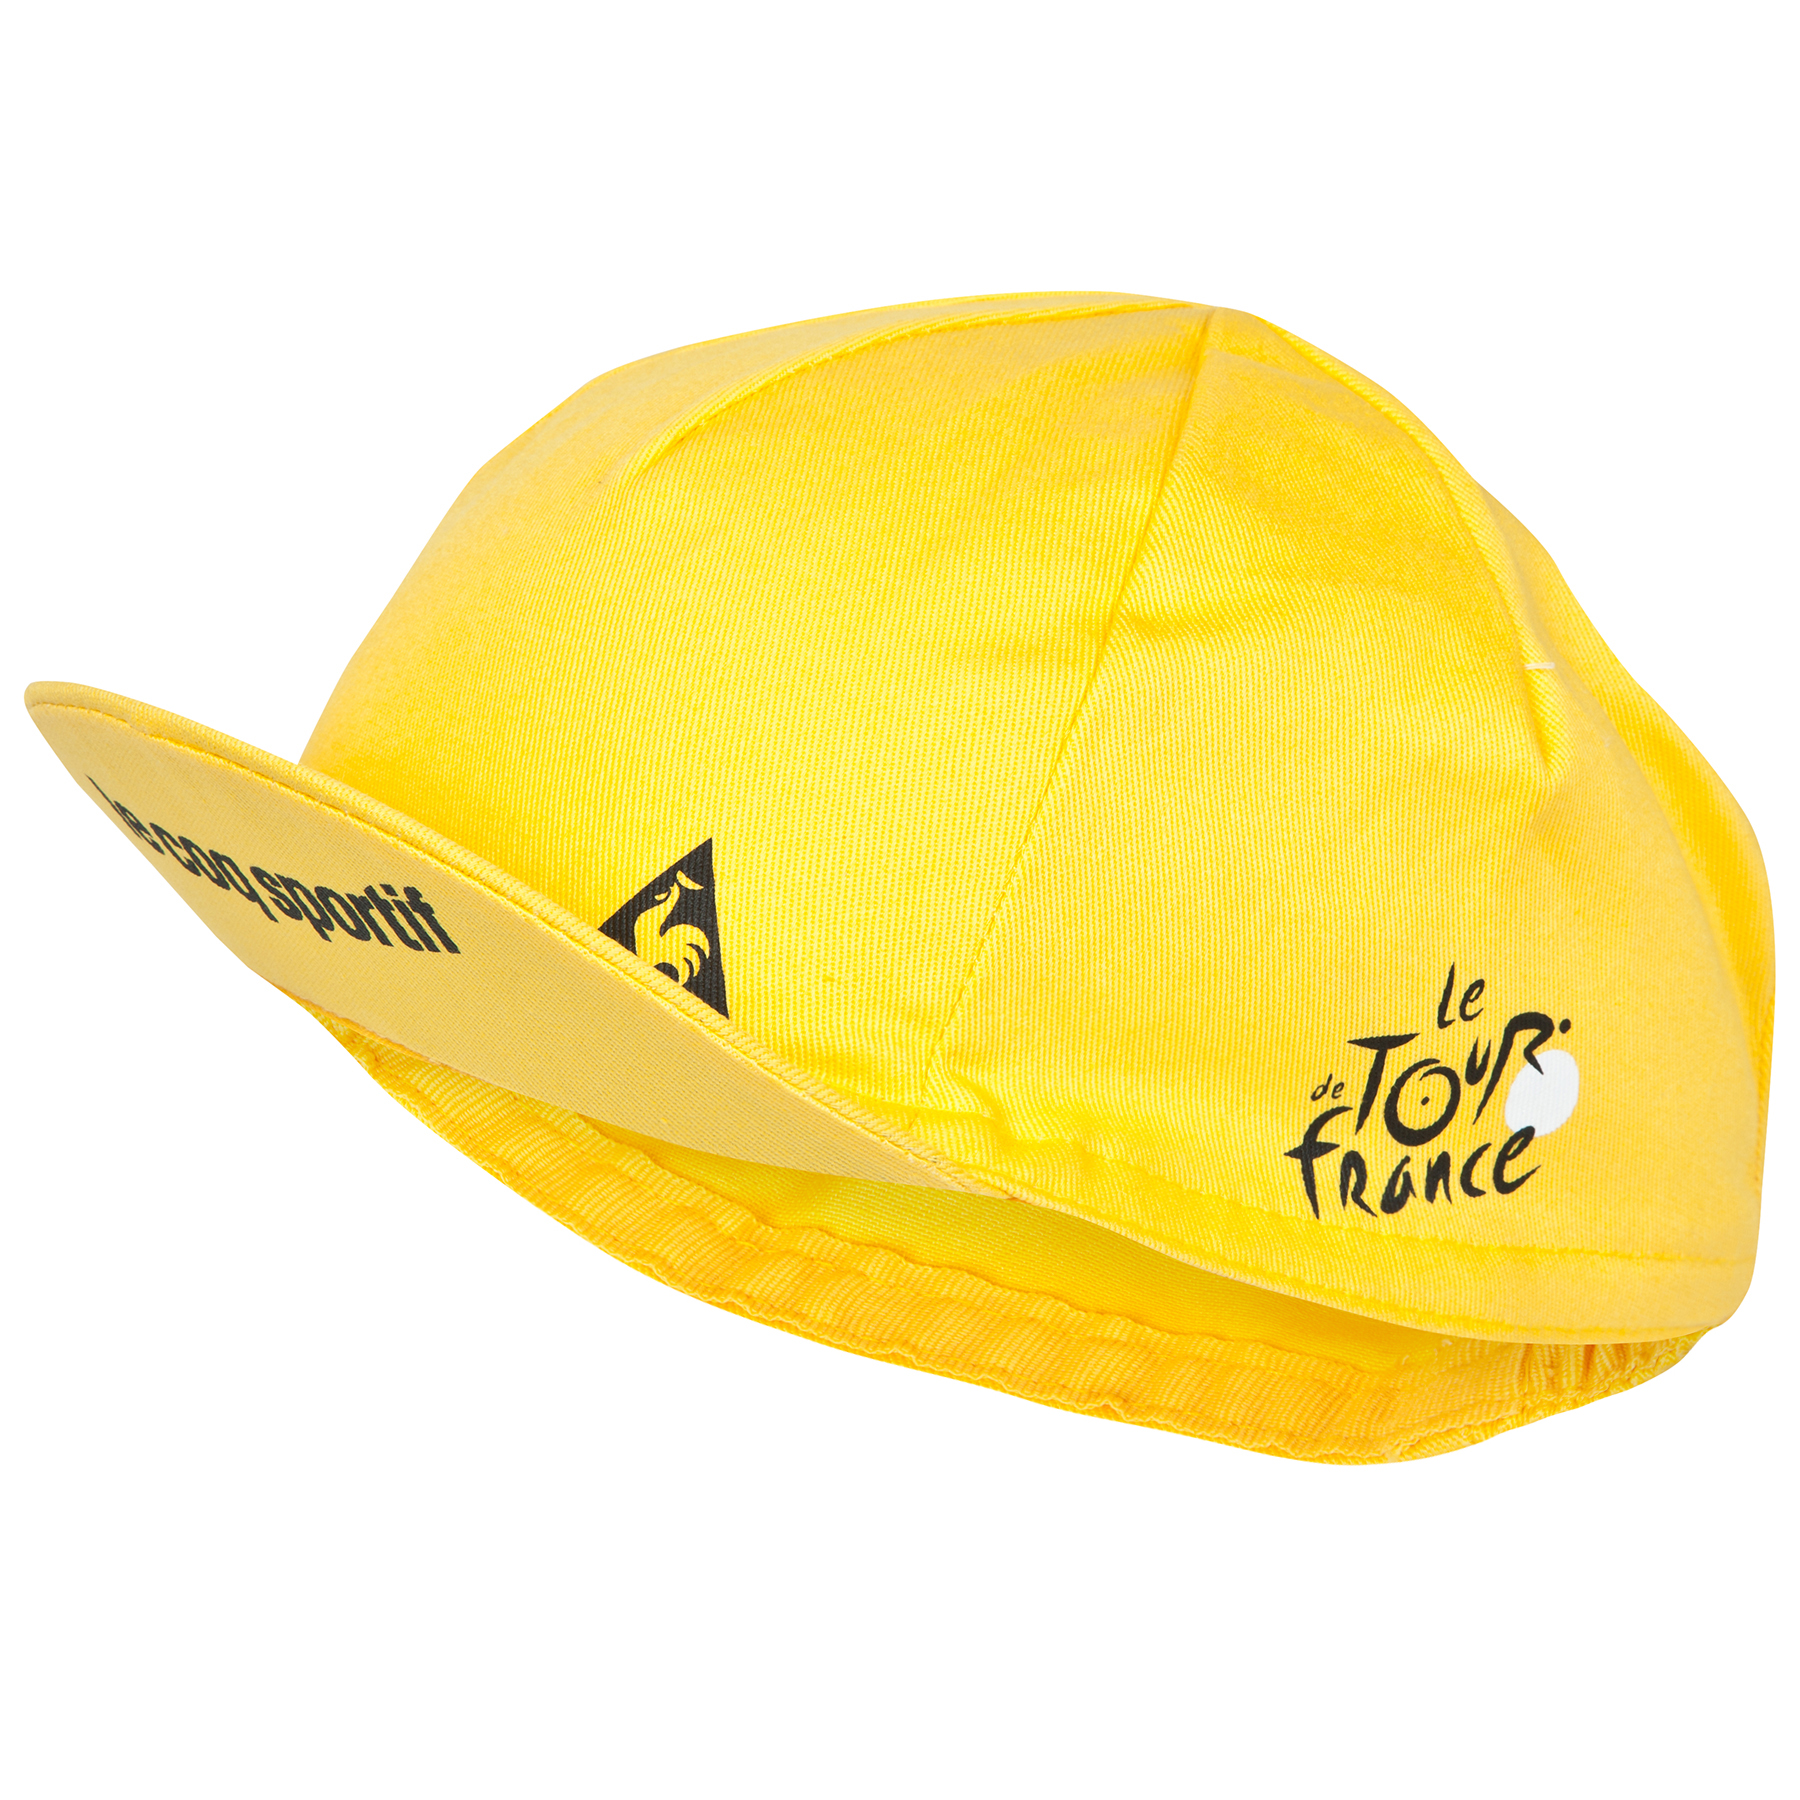 Le Tour de France Le Coq Sportif Cycling Cap - Yellow